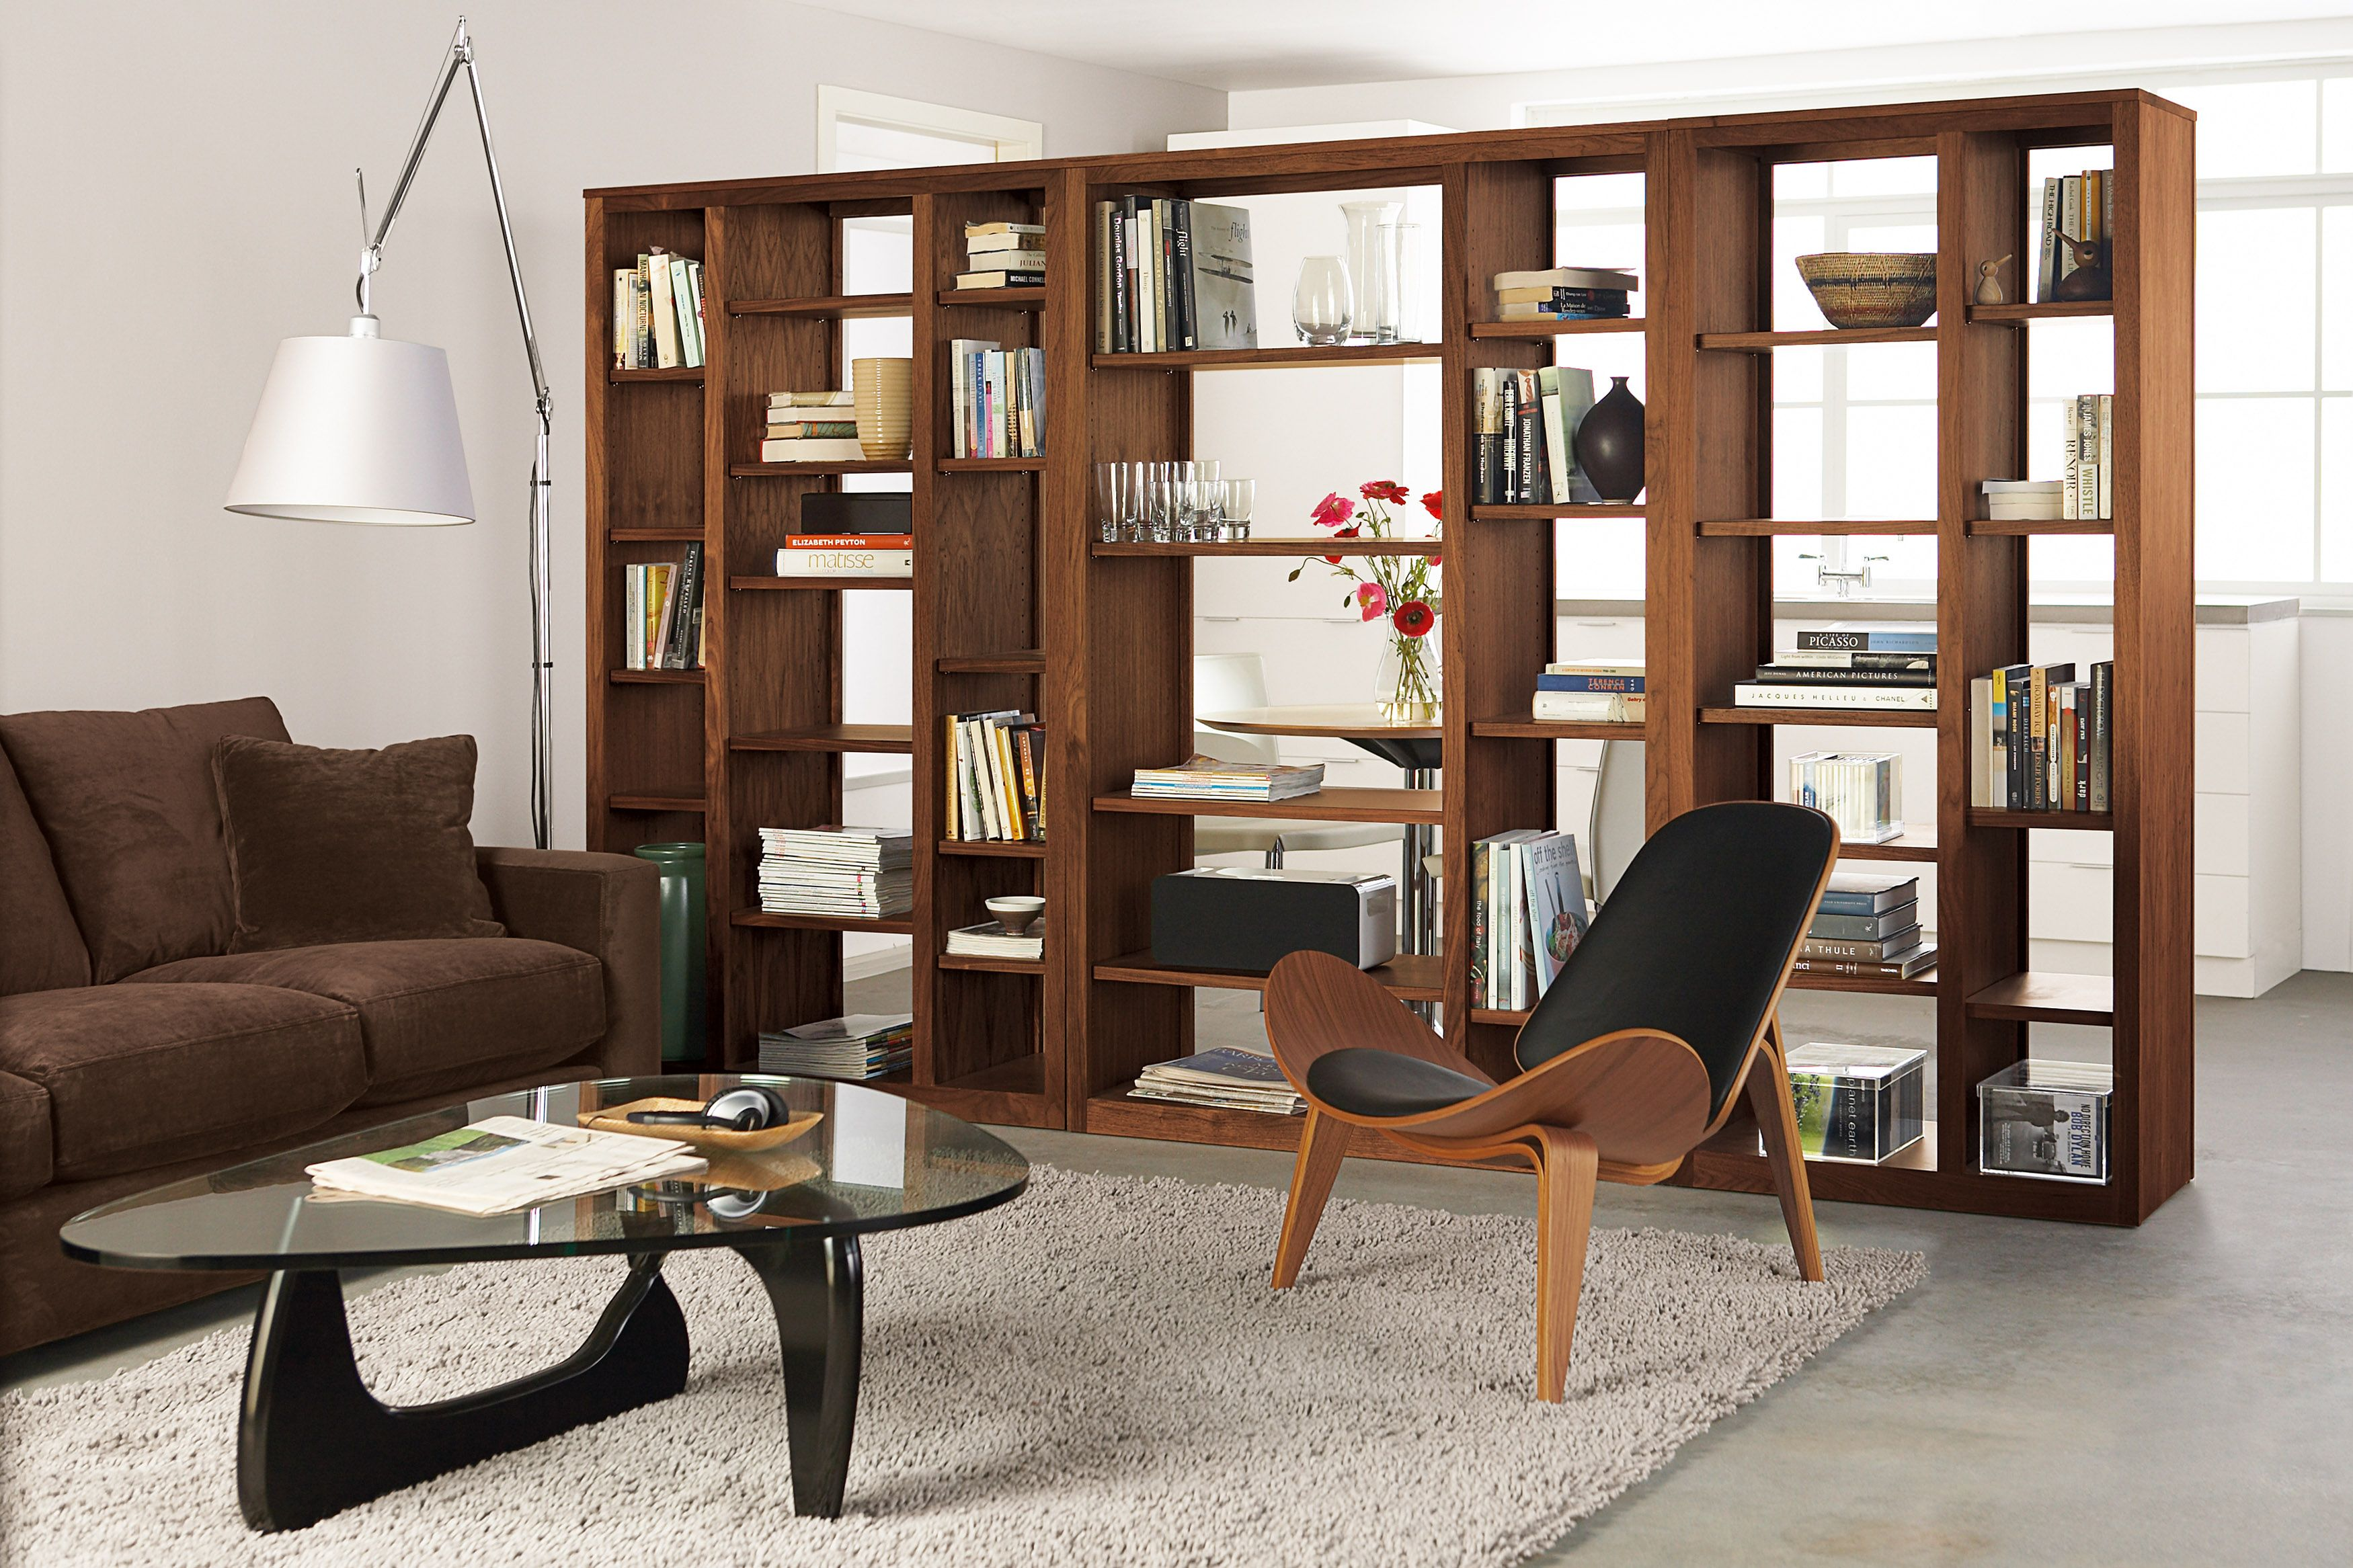 bookcase storage dividers crammed home surprising room modern low design modular popular open divider bookcases